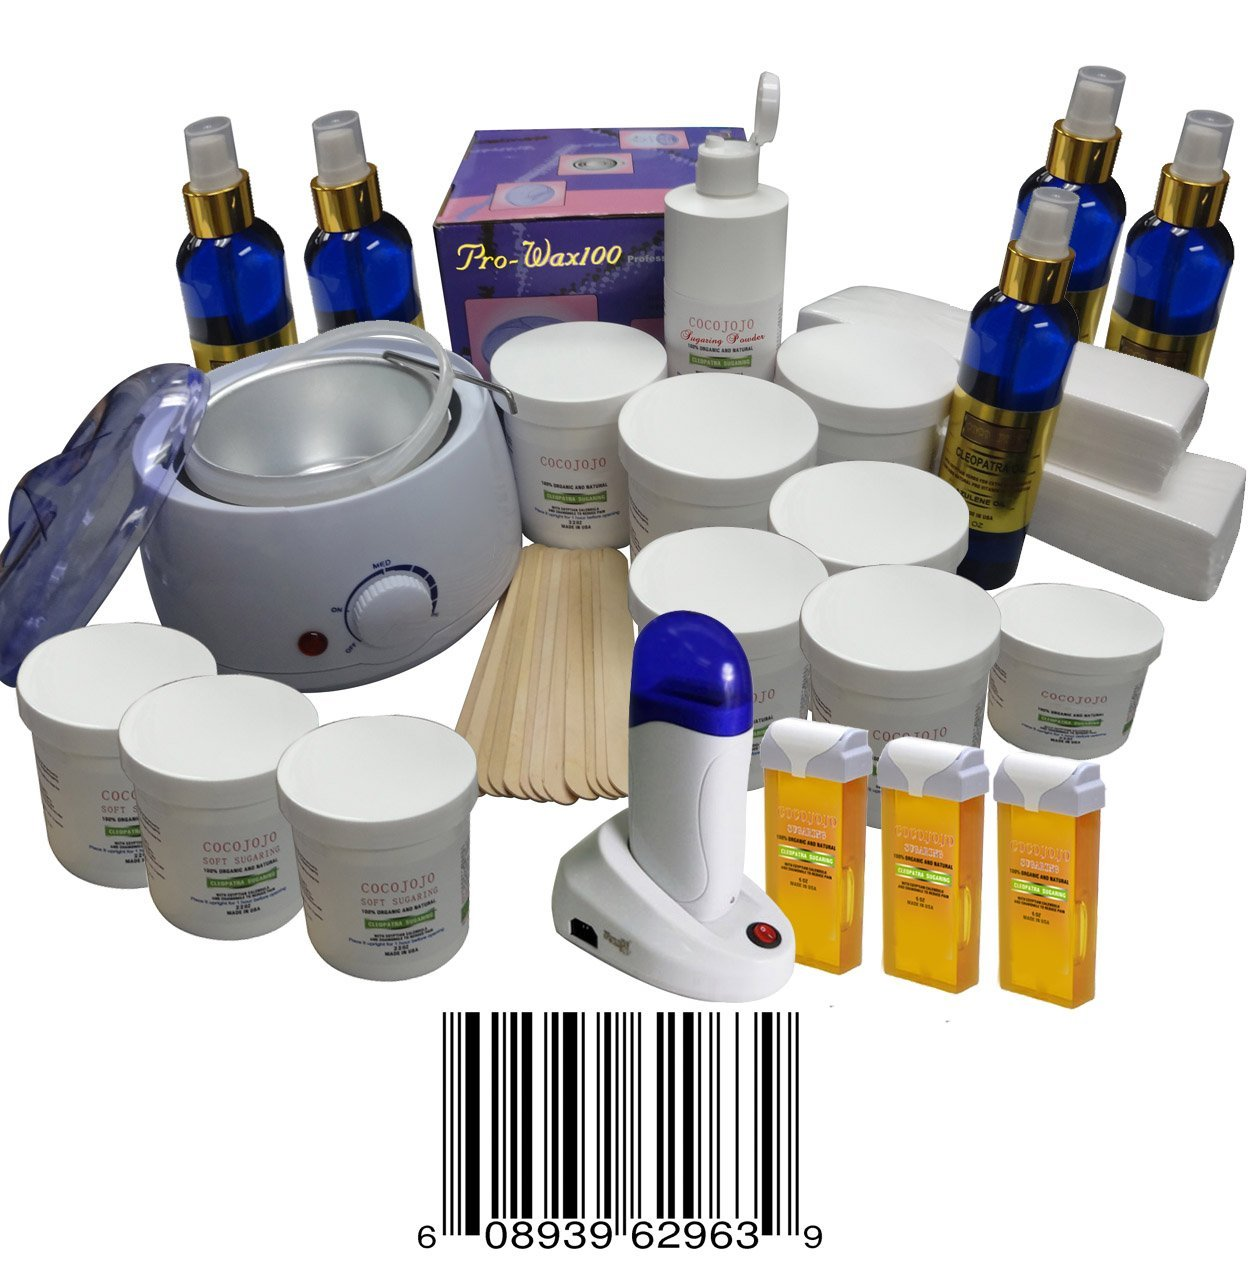 Super Saving Start up Kit, Threading Electric Kit + Sugaring Wax Warmer + Sugaring Cartridge Warmer + 6 Standard Sugaring 22 Oz (Standard Sugaring to Use with Hands or Spatula or Strips) + 3 Soft Sugaring 22 Oz Jar (Soft Sugaring to Use with Strips) + 3 Soft Sugaring 5 Oz Cartridge (Soft Sugaring